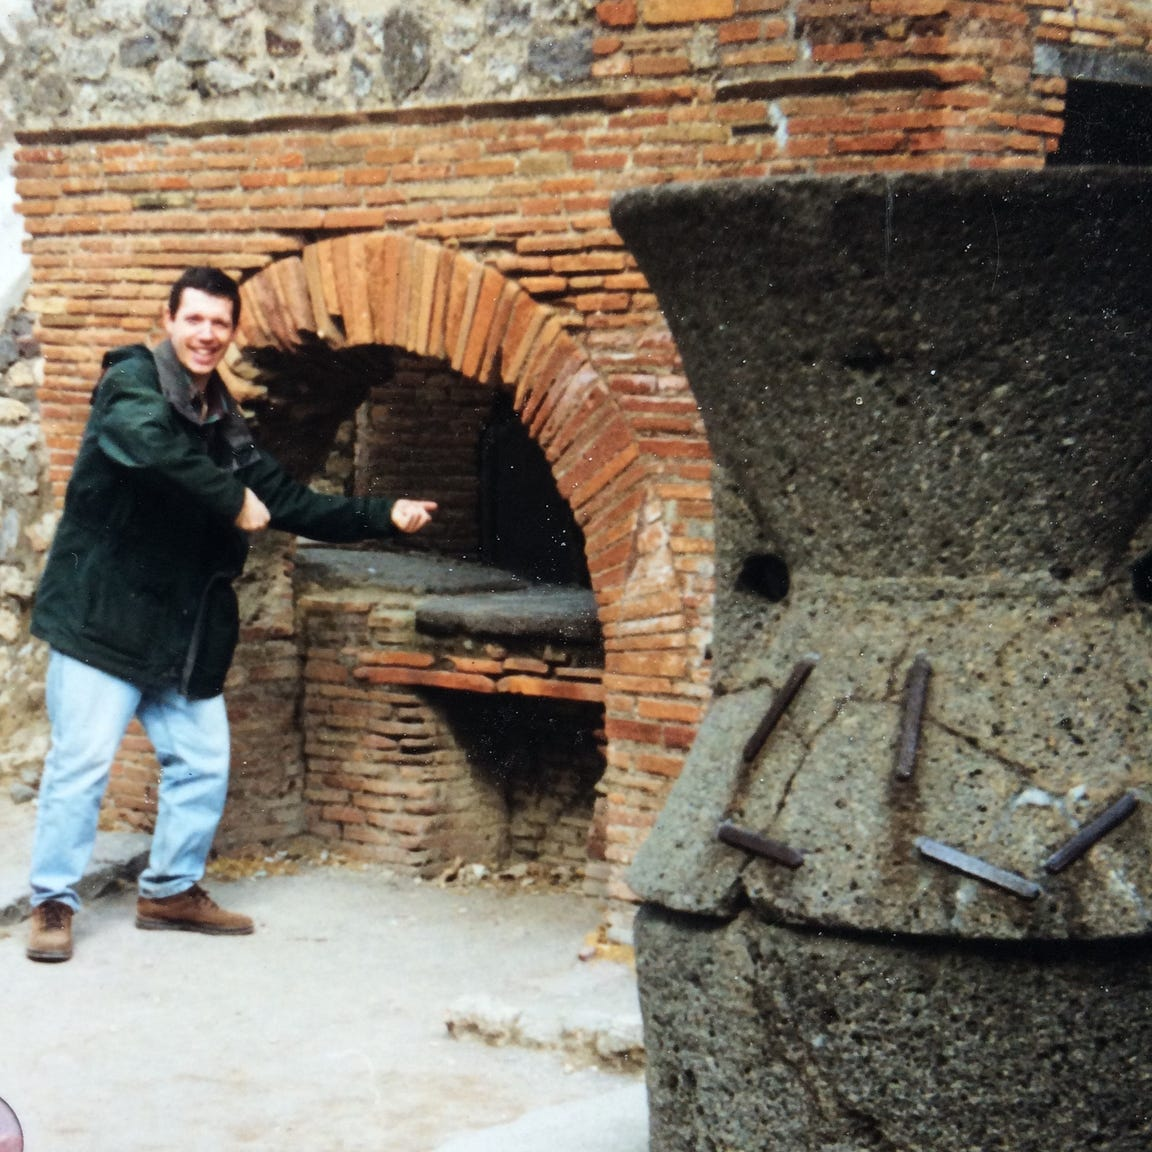 Anthony Mangieri at ancient oven in Pompeii, Italy.